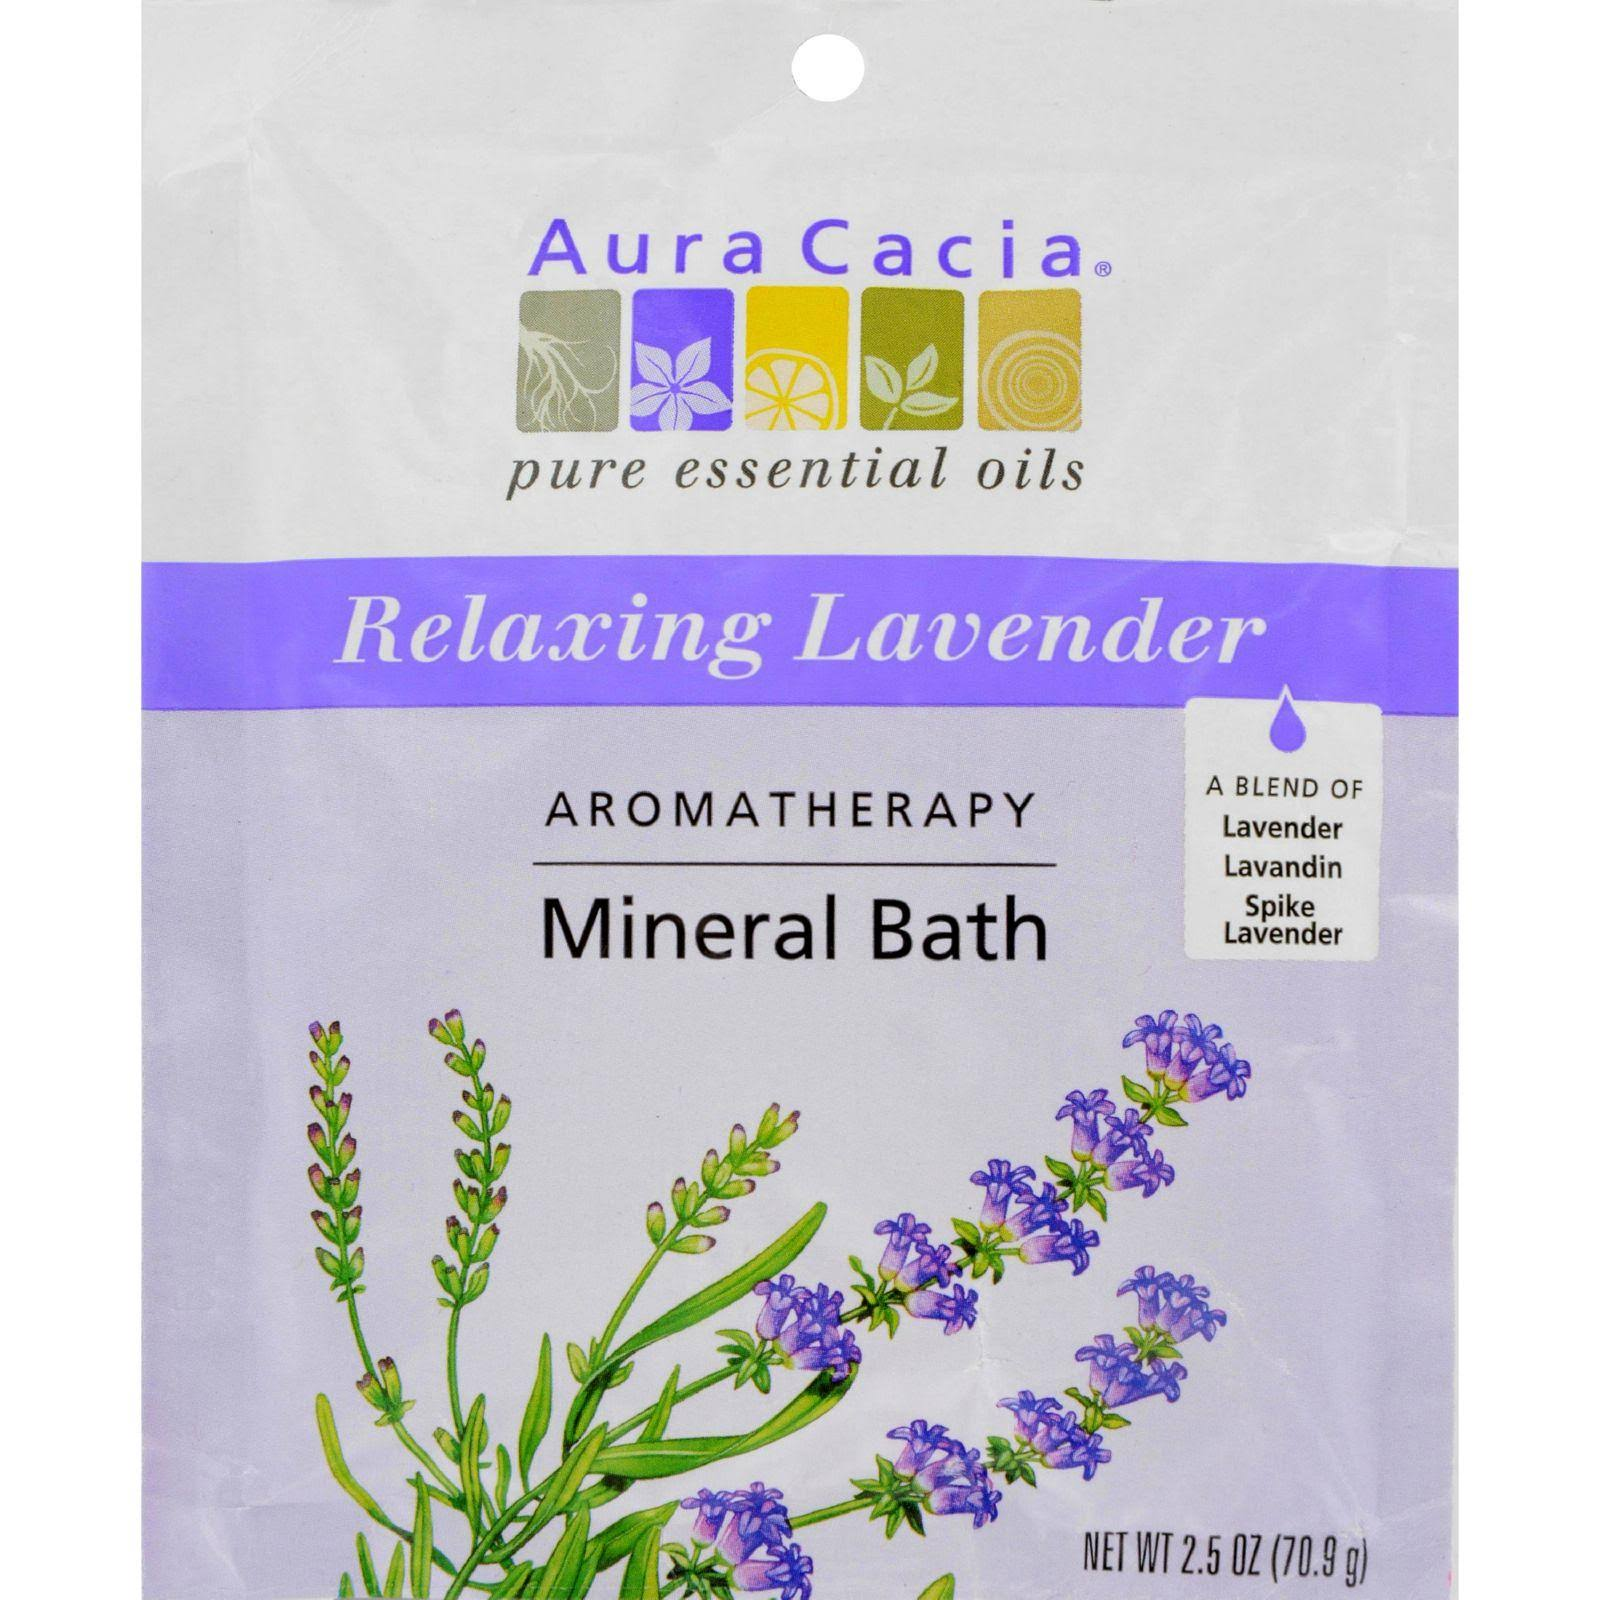 Aura Cacia Aromatherapy Mineral Bath Salt - Relaxing Lavender, 2.5oz